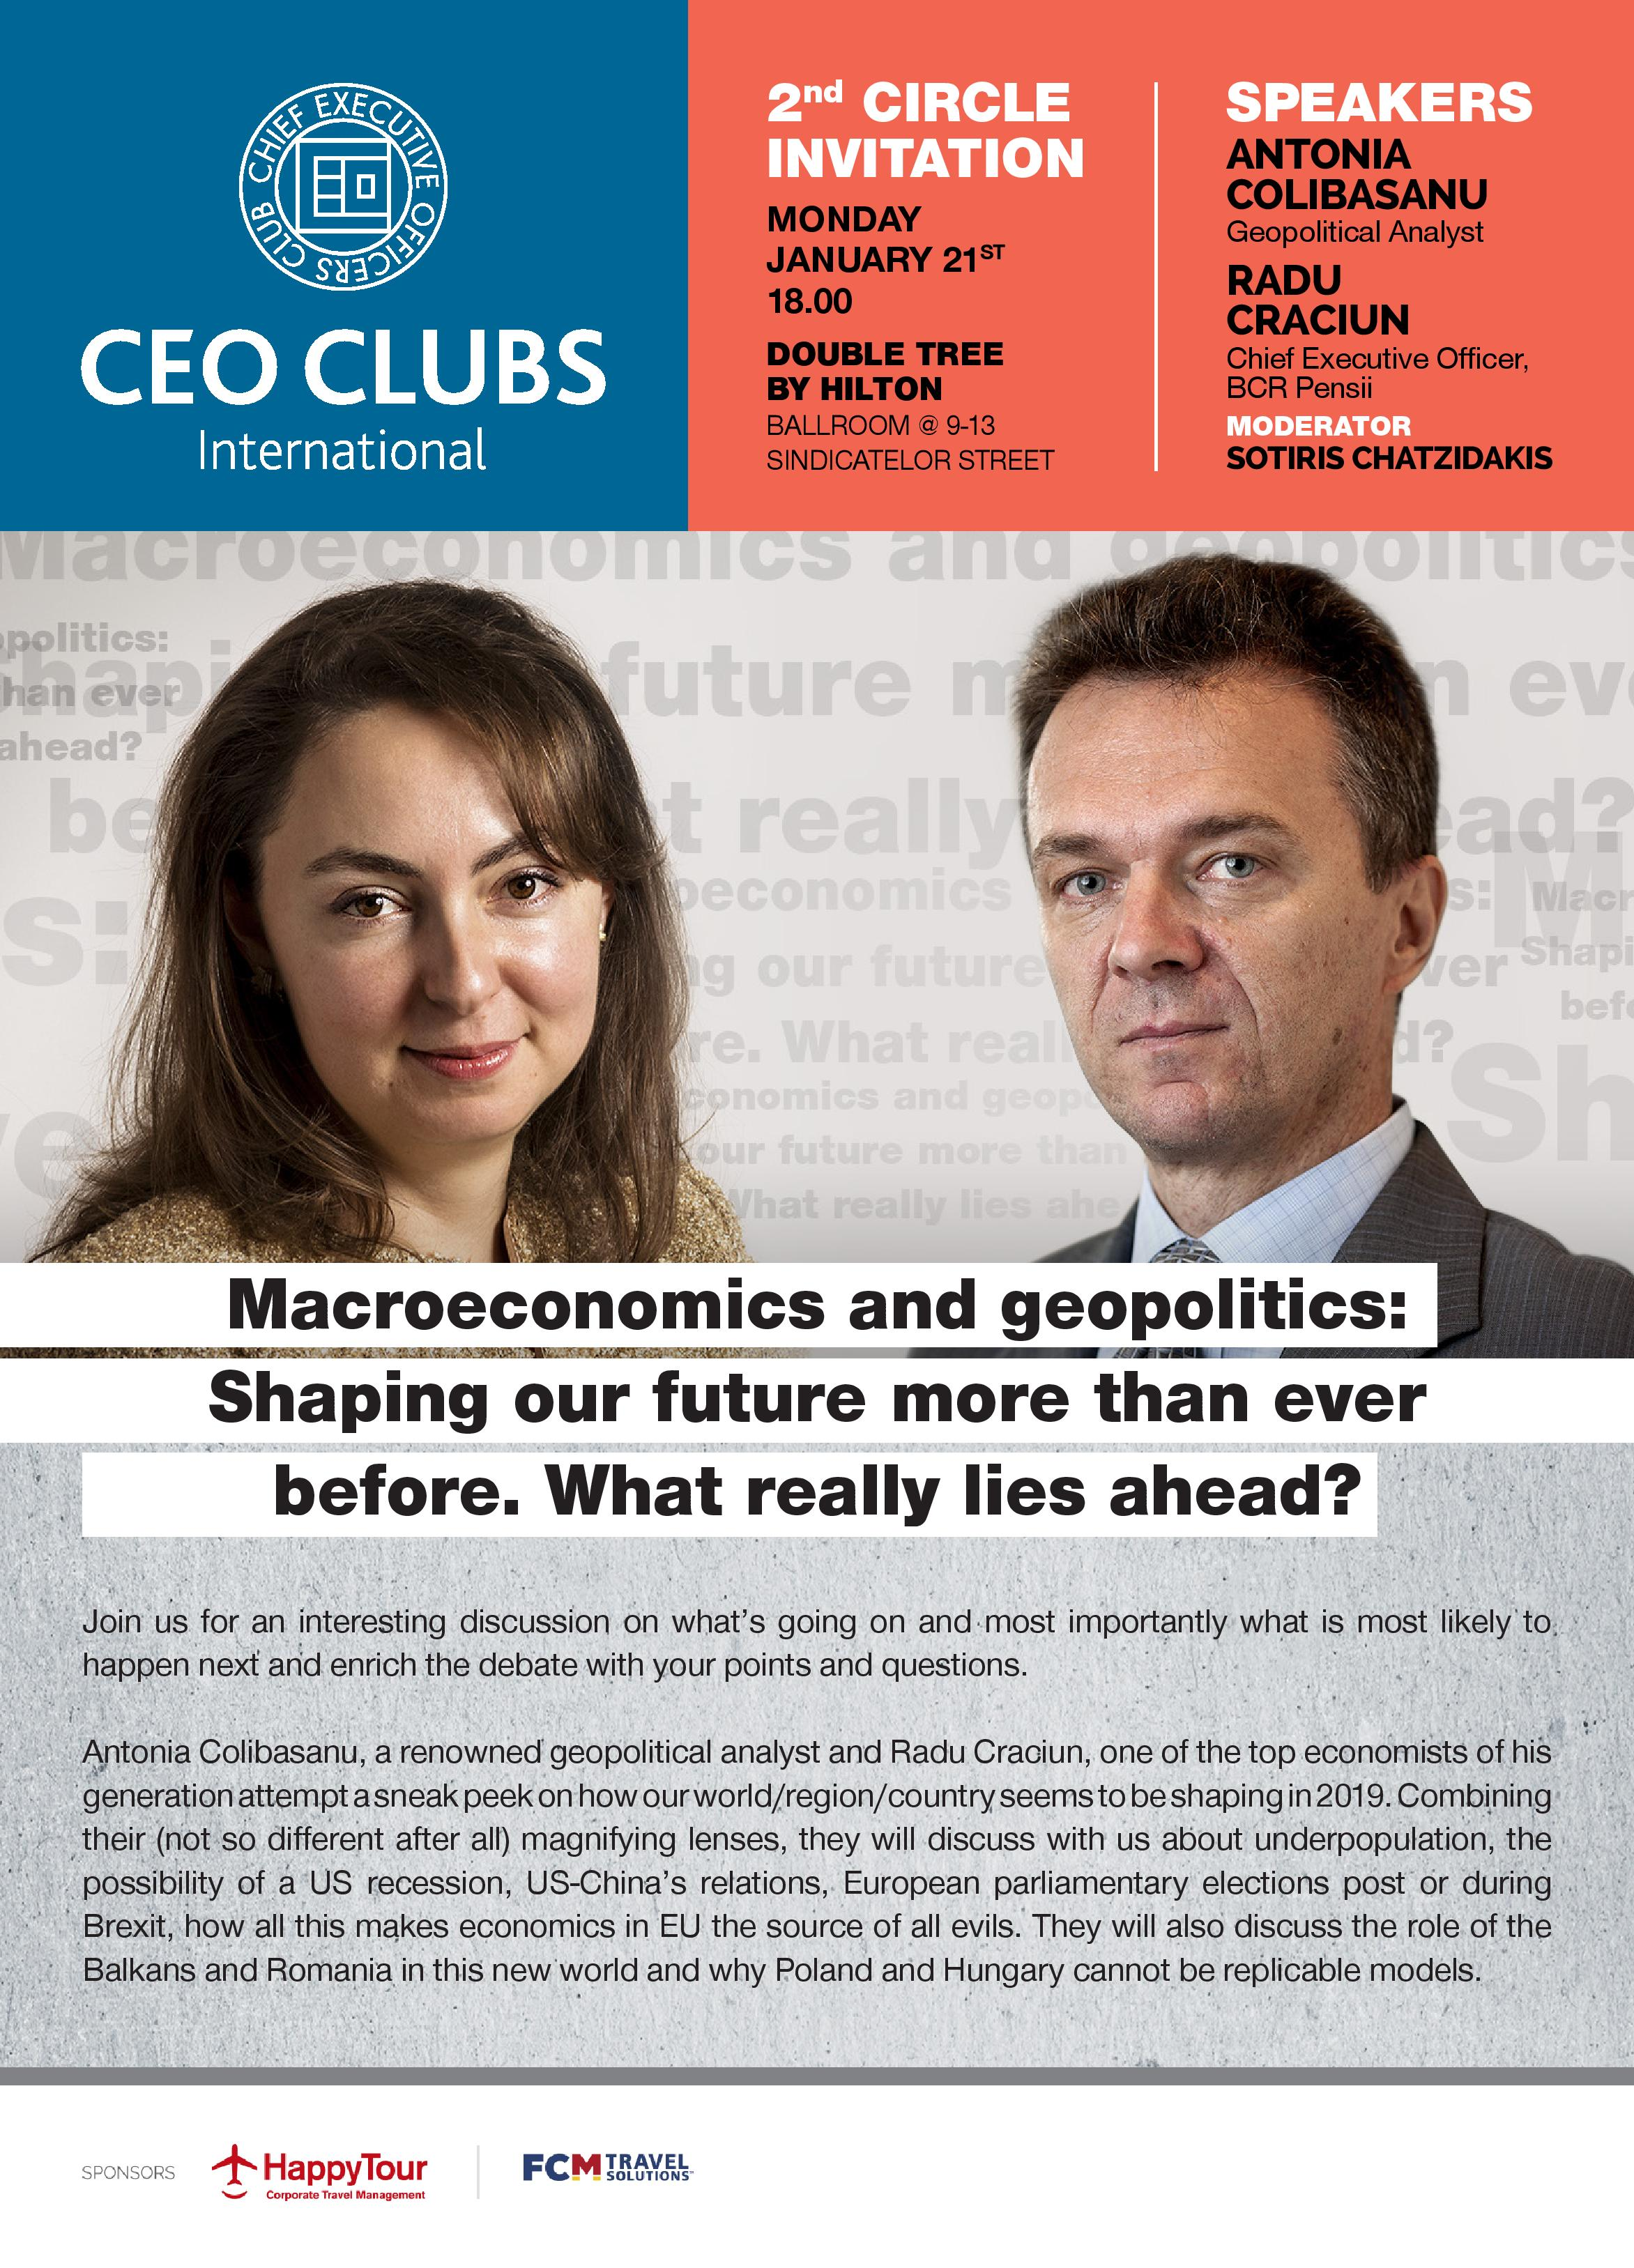 2nd Circle: Macroeconomics and geopolitics: Shaping our future more than ever before. What really lies ahead?